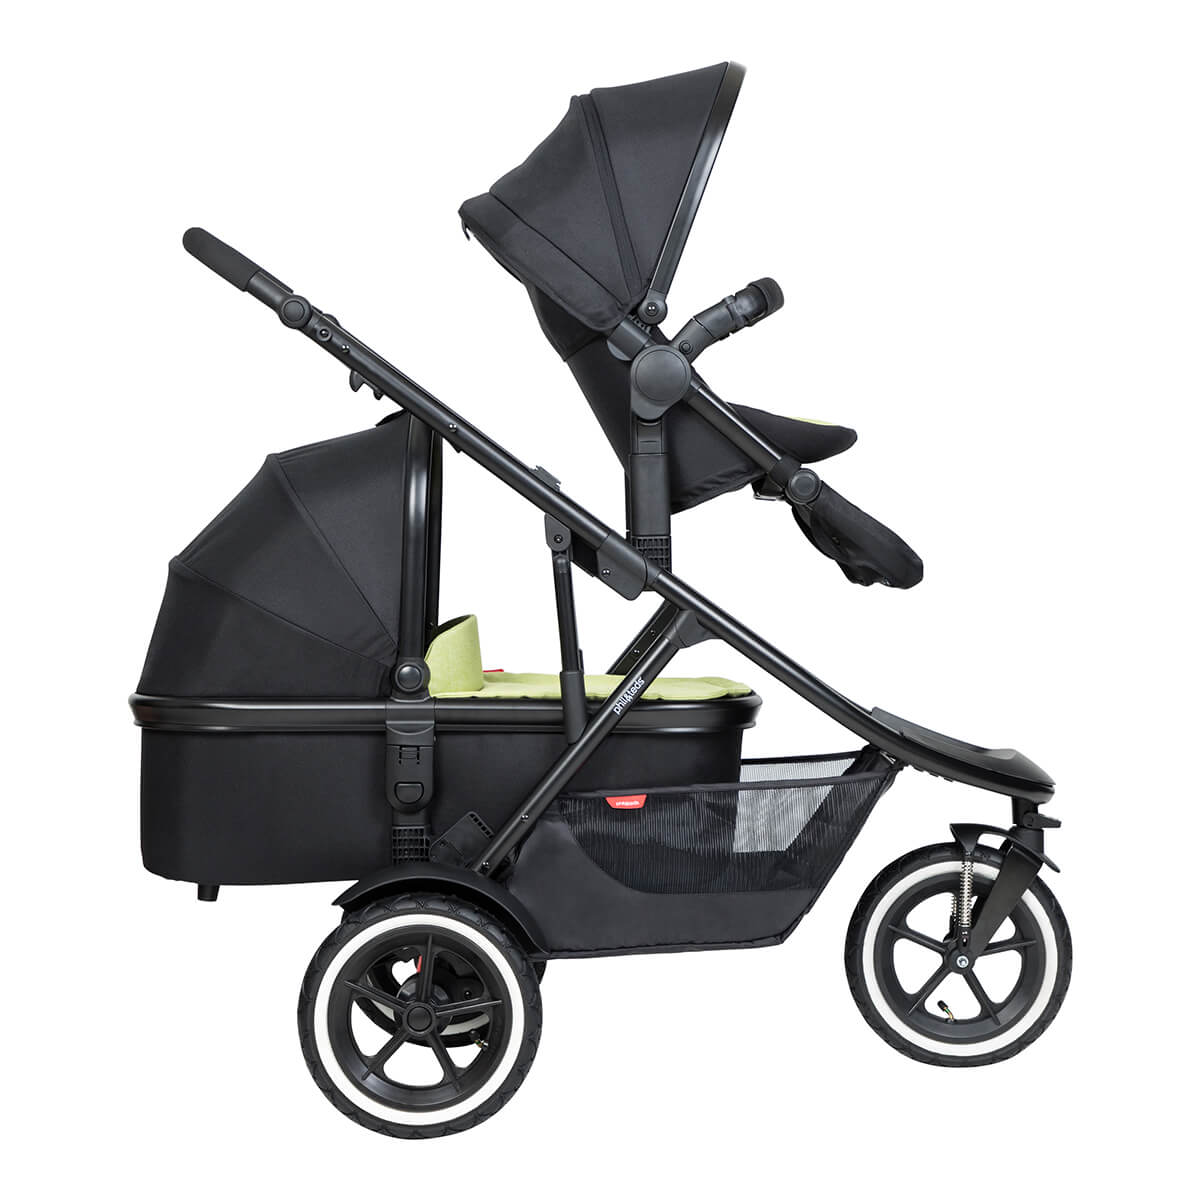 https://cdn.accentuate.io/4513462550624/19440099688632/philteds-sport-buggy-with-double-kit-extended-clip-and-snug-carrycot-side-view-v1626486530554.jpg?1200x1200